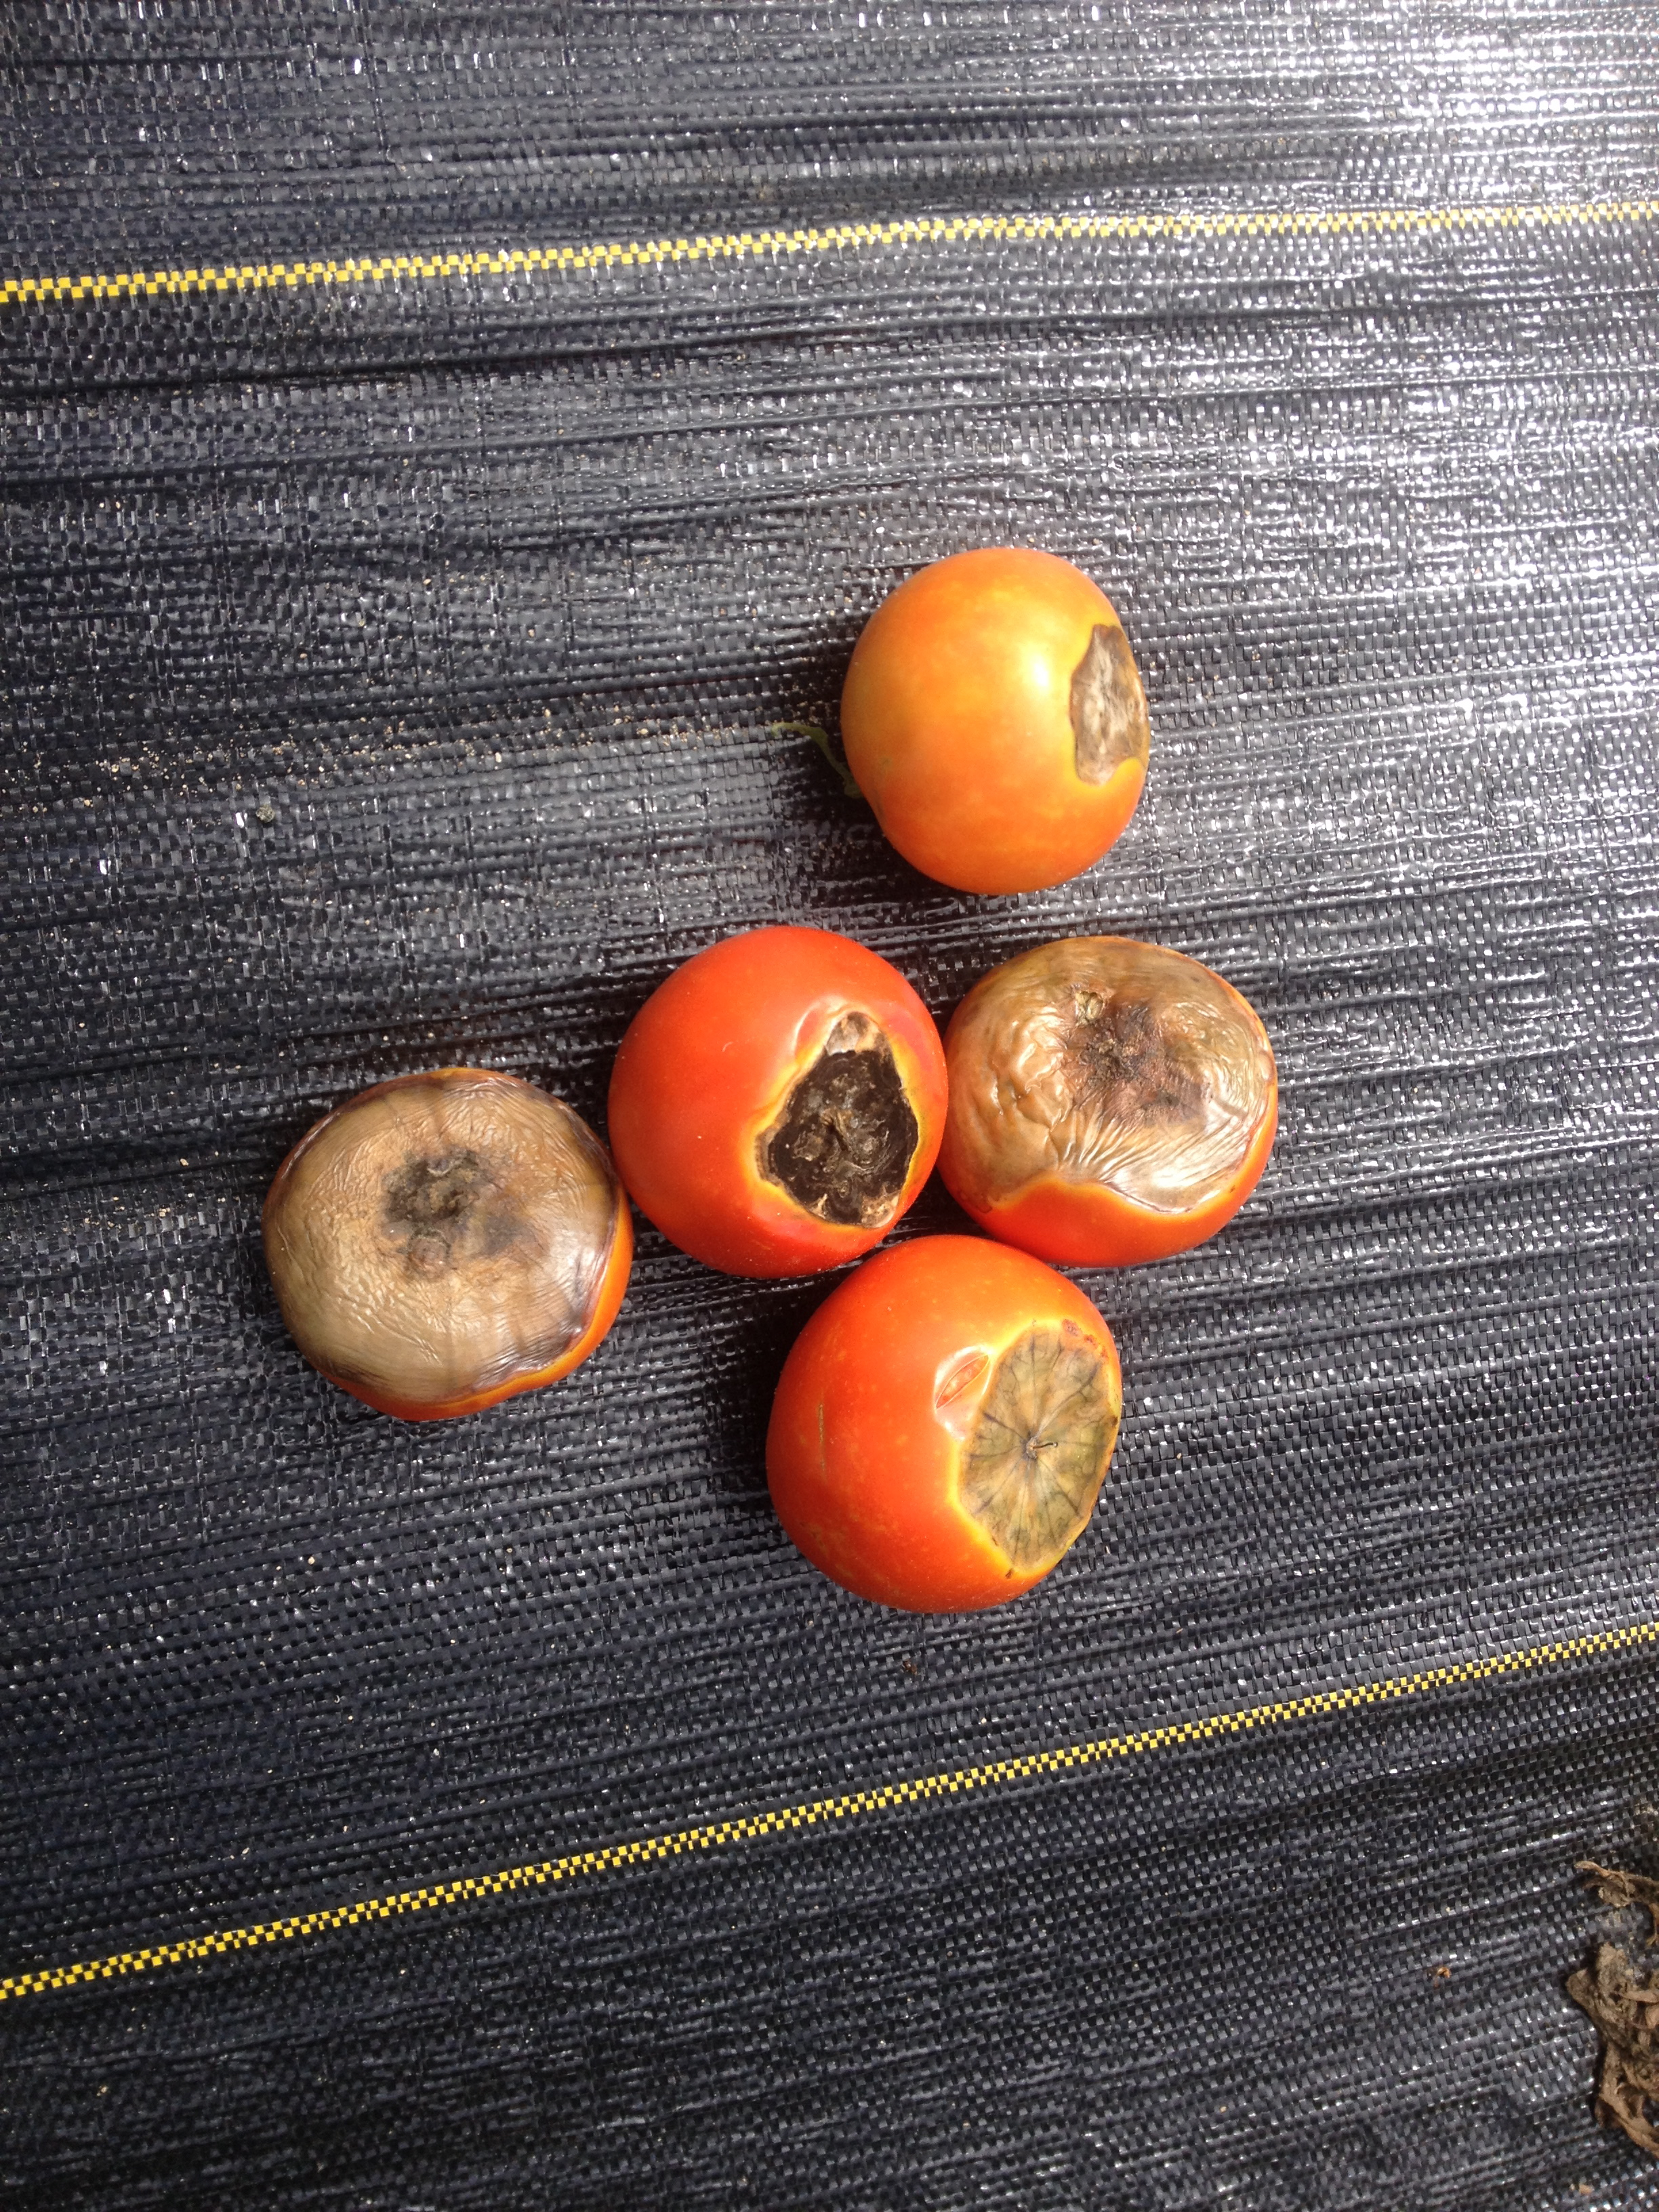 Blossom end rot on slicing tomatoes.